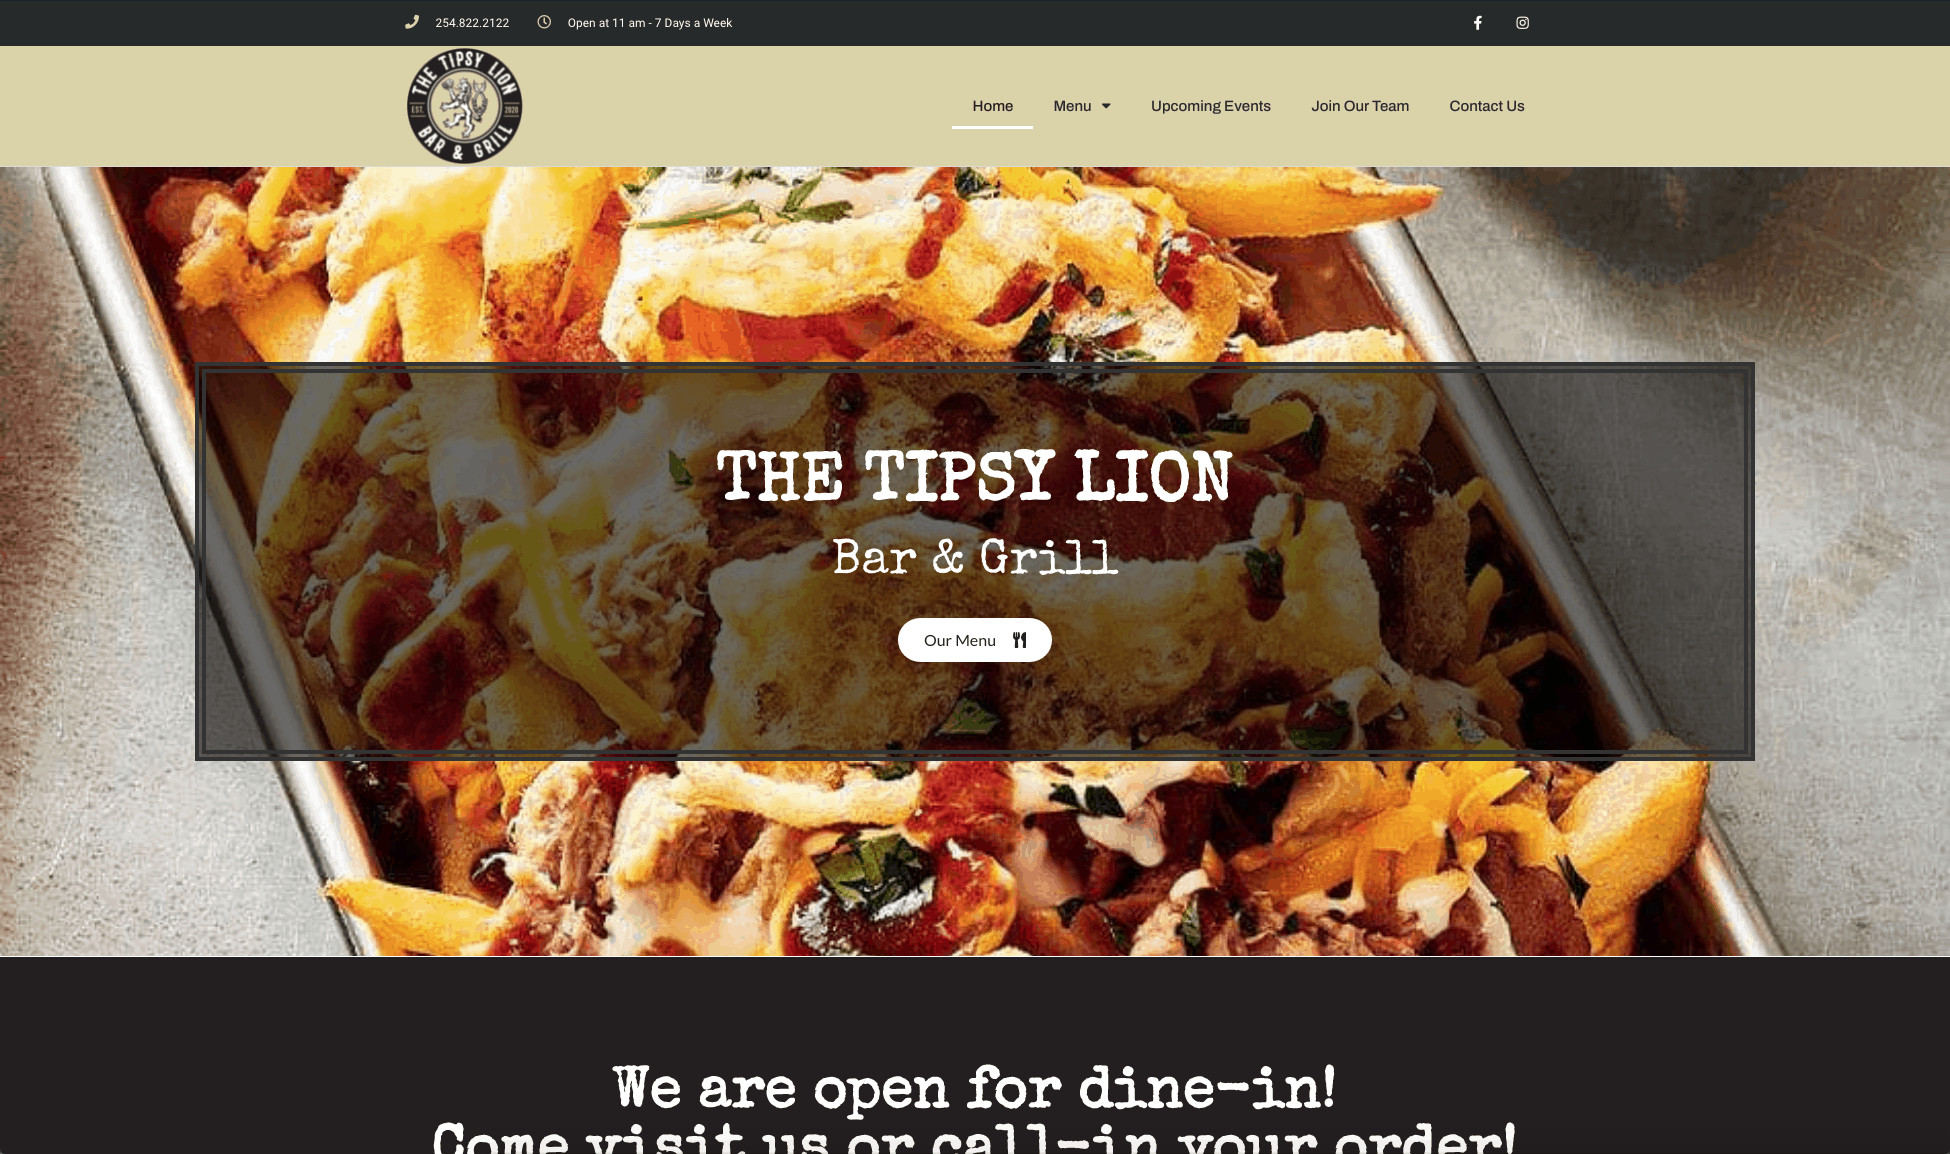 The-Tipsy-Lion-Bar-Grill